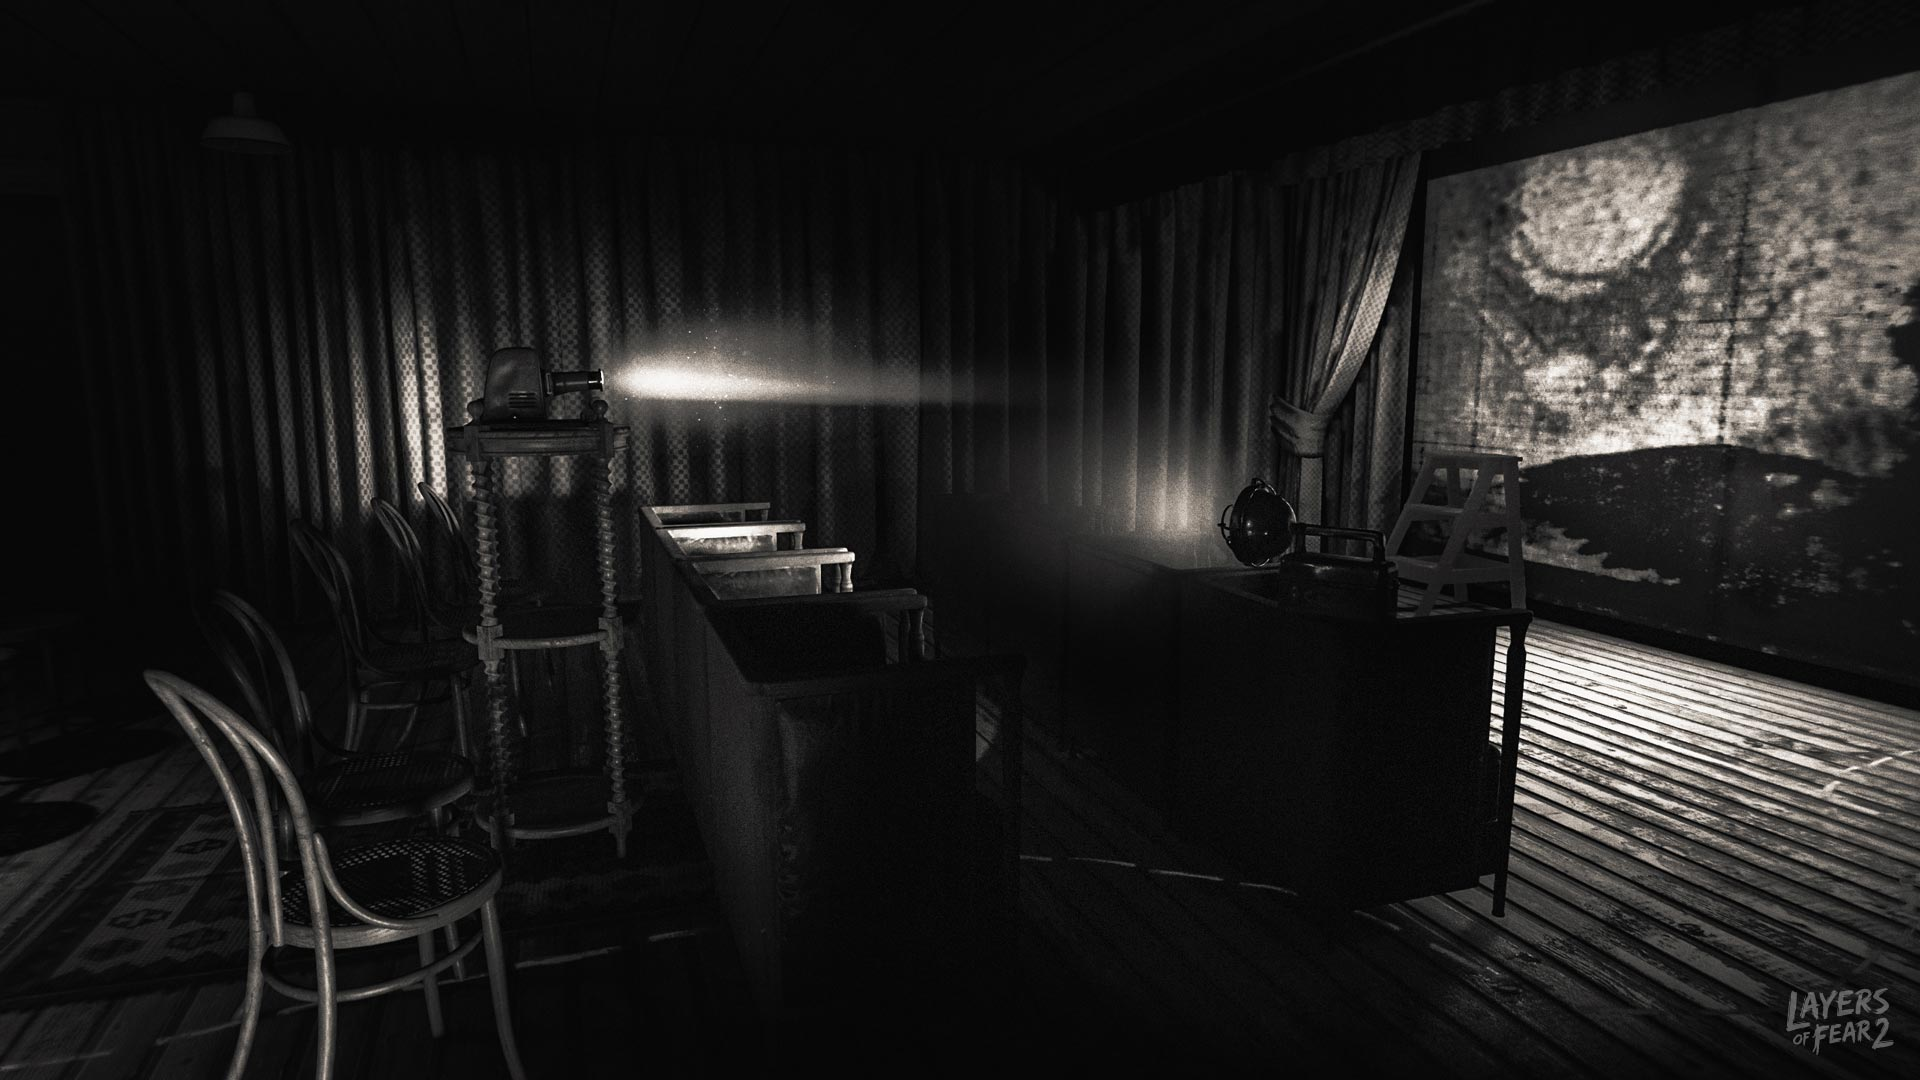 Layers of Fear 2 follows an actor who takes a mysterious role aboard a luxury ship. © Bloober Team